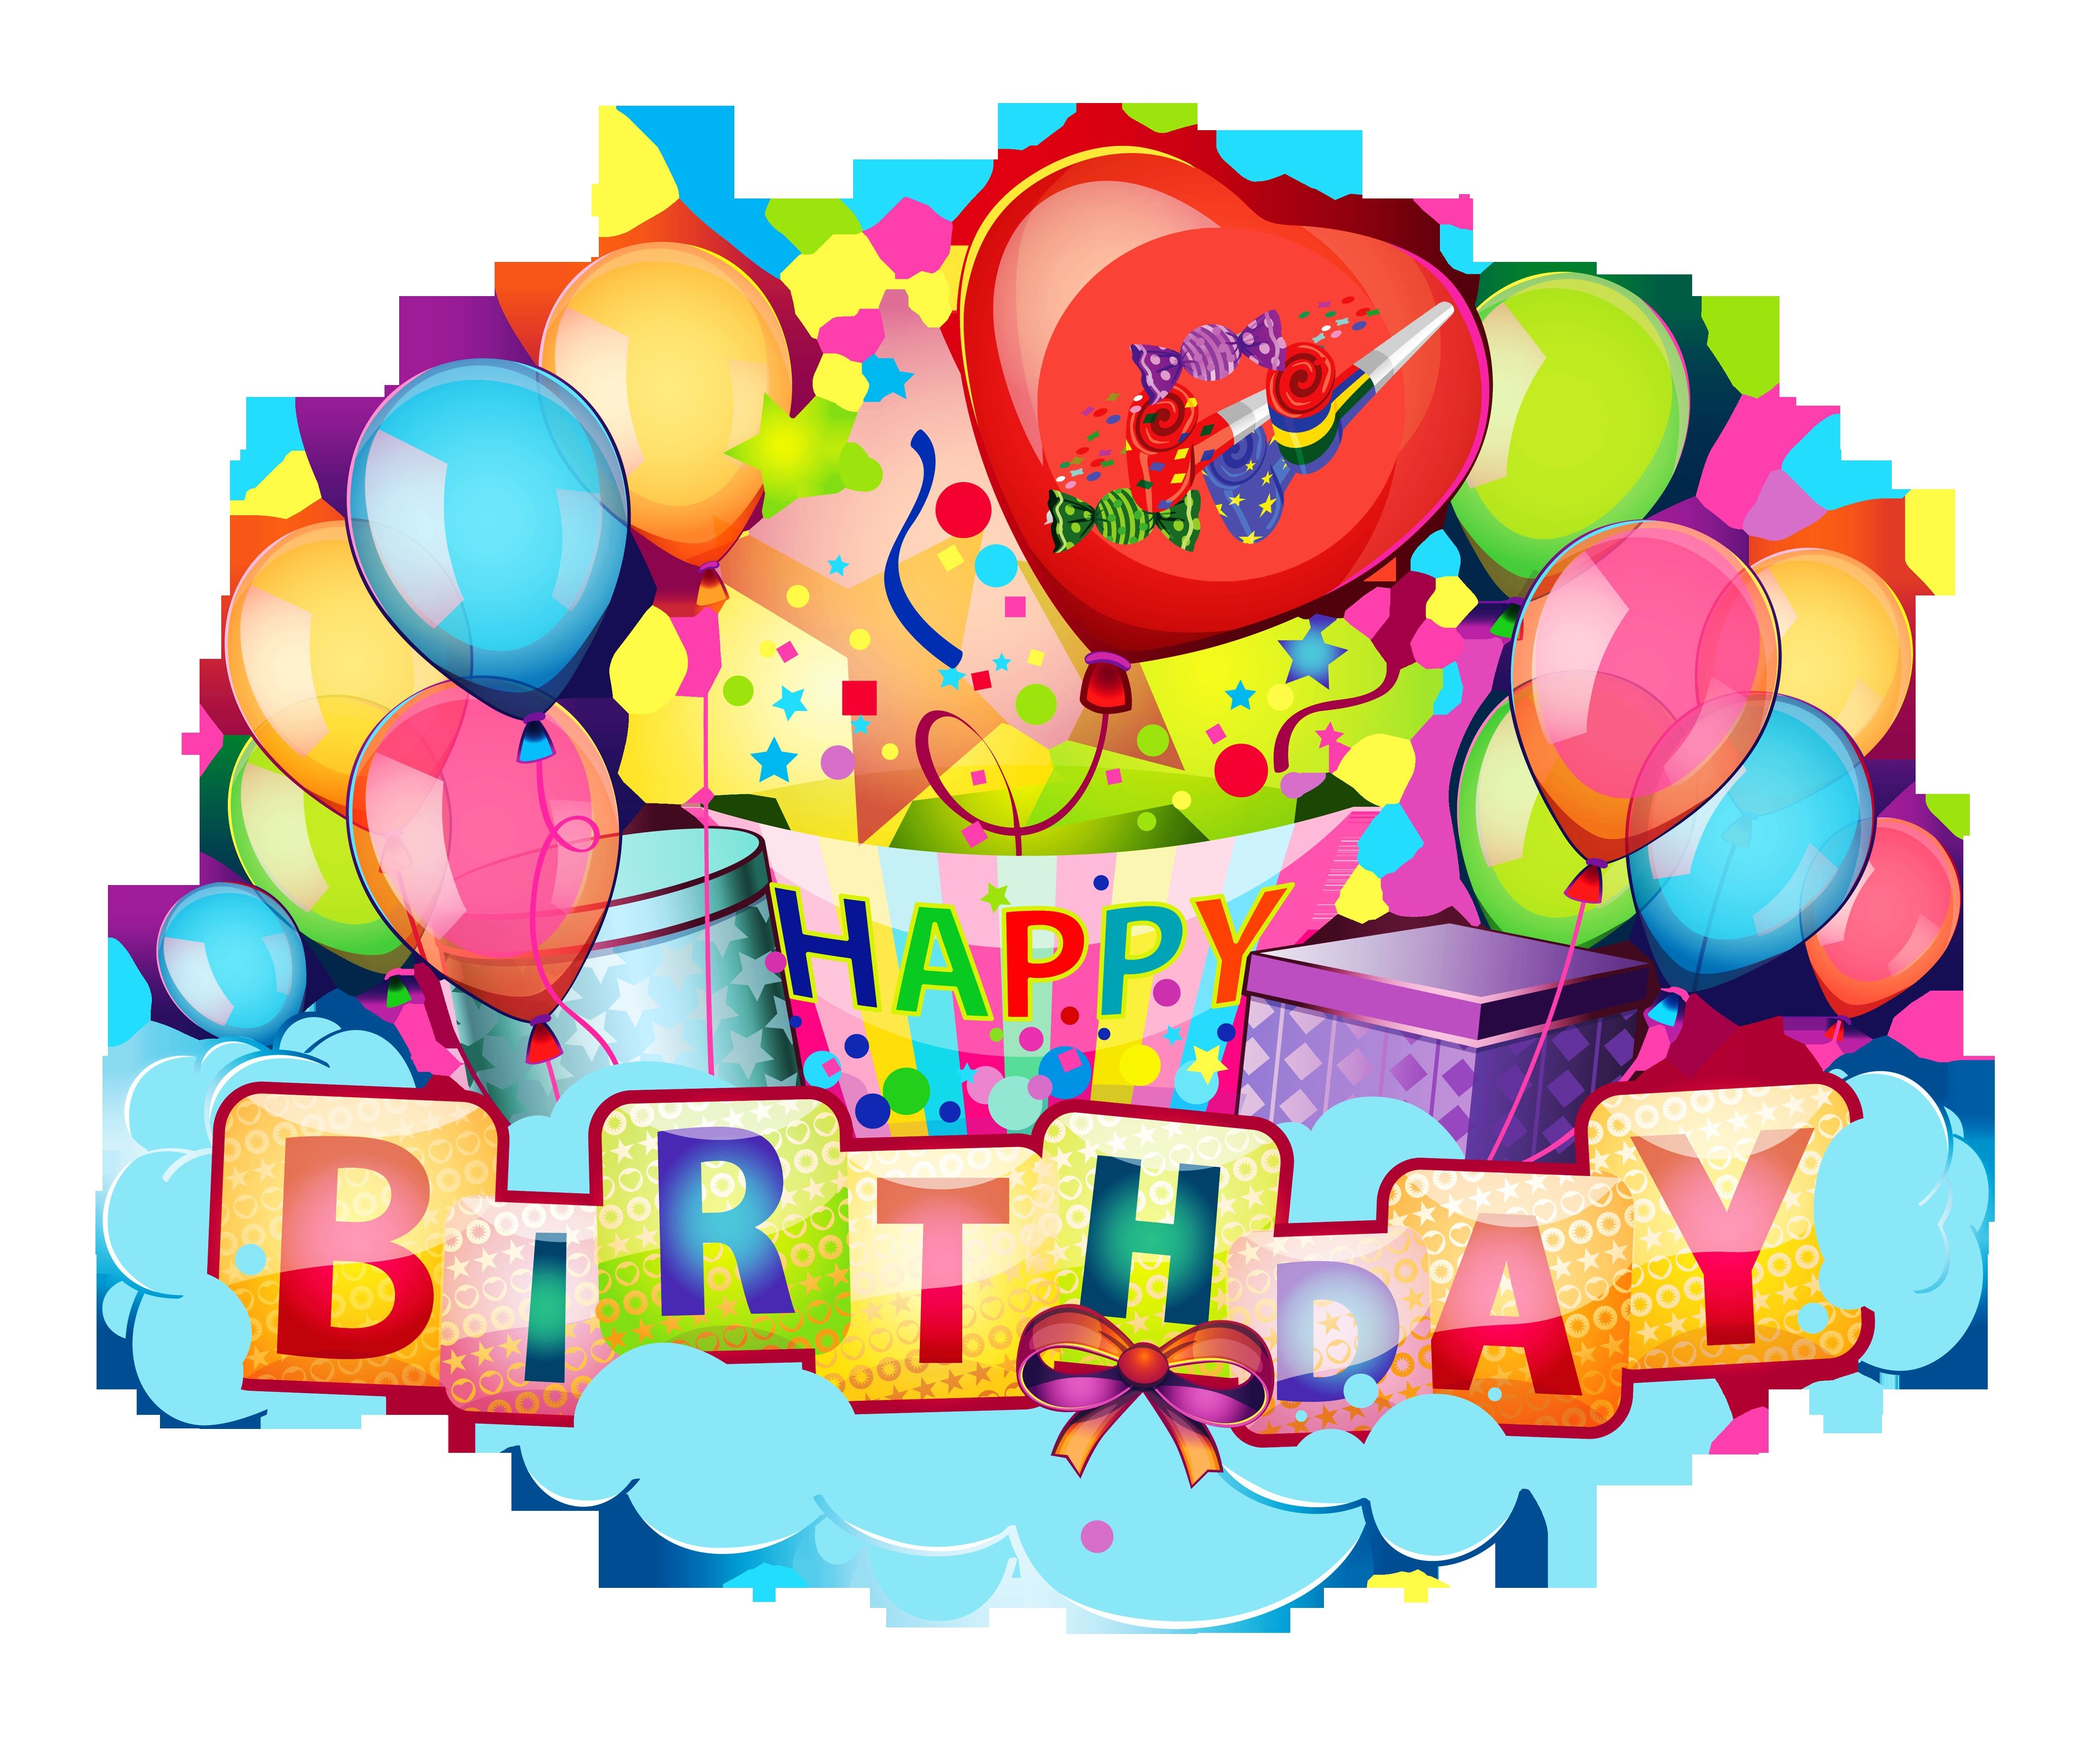 birthday clipart for facebook ; Happy-birthday-clipart-for-facebook